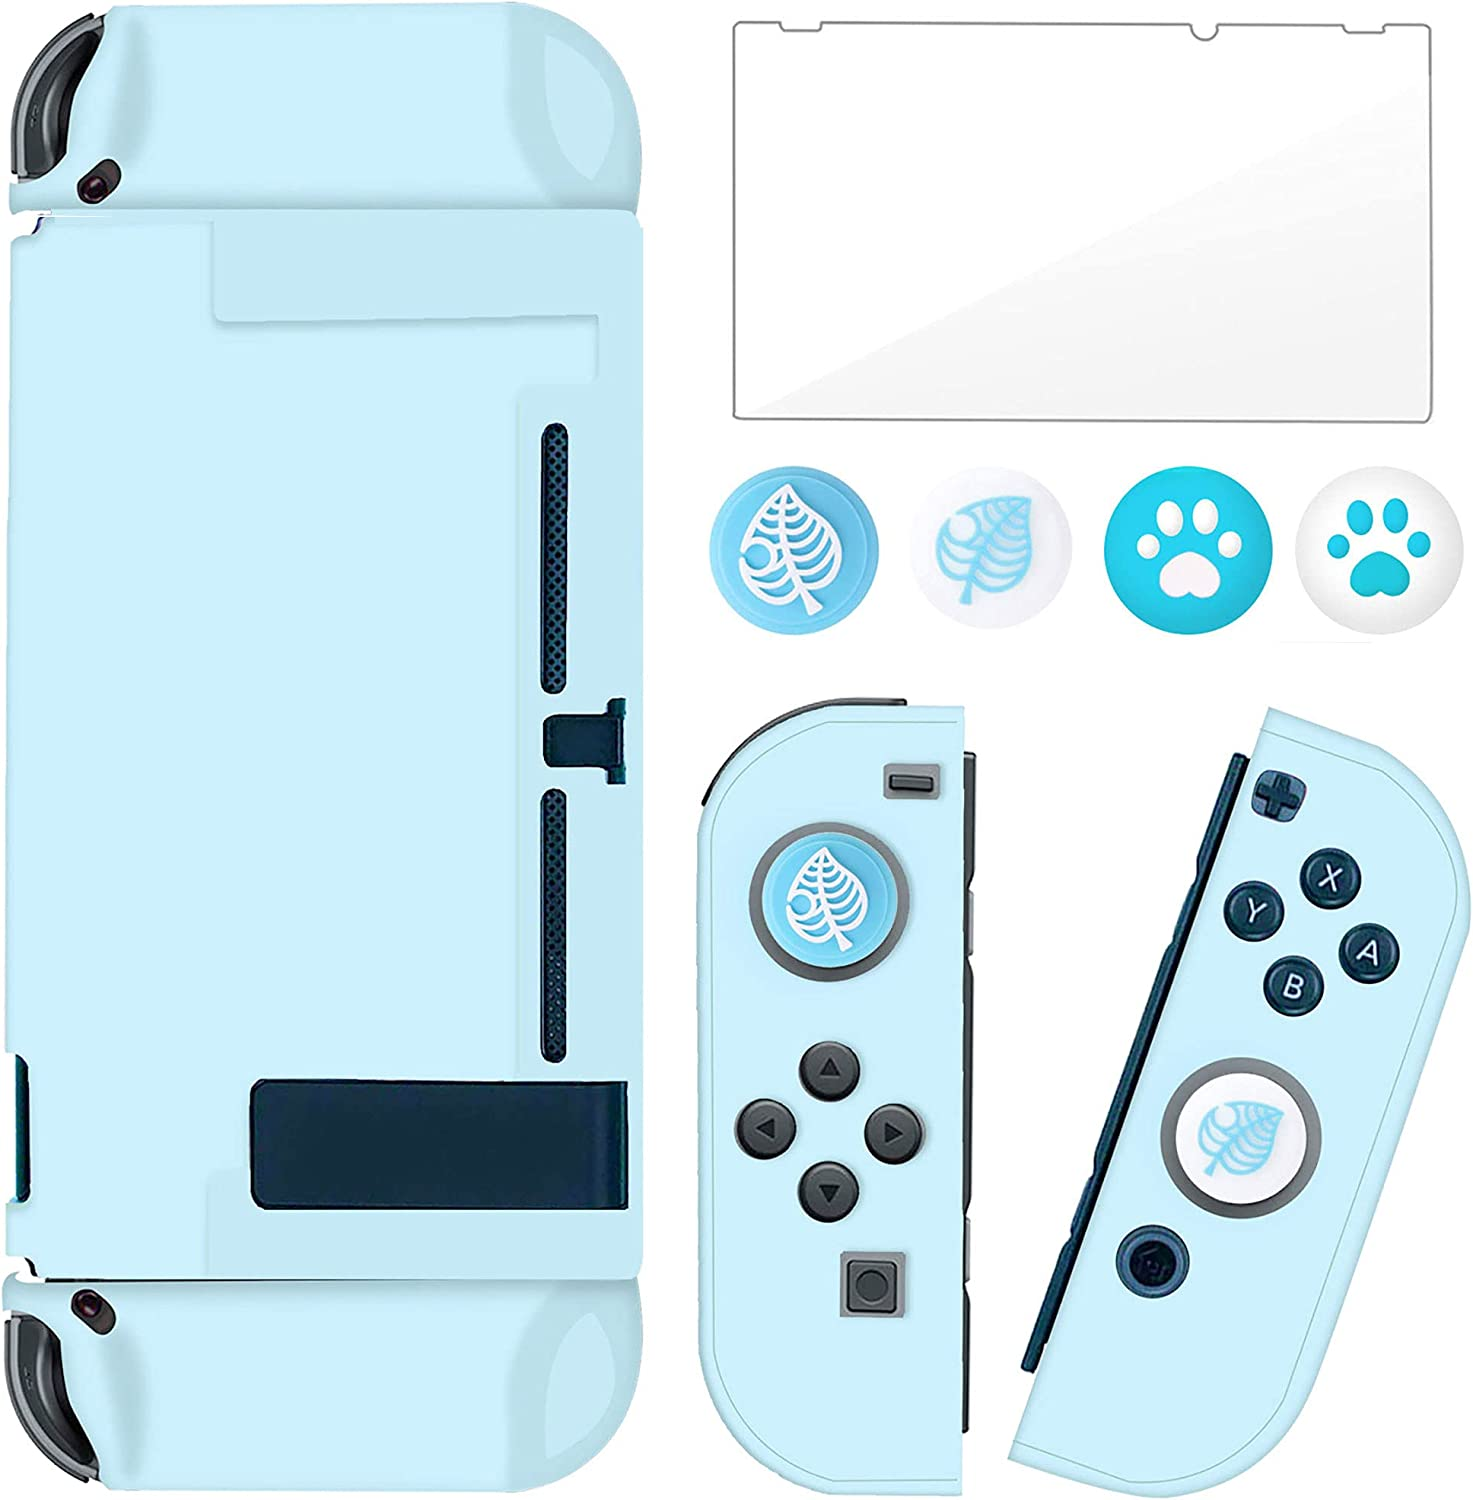 BRHE Dockable Switch Protective Case Cover for Switch with Glass Screen Protector, Anti-Scratch Shock-Absorption Grip Cover-Blue